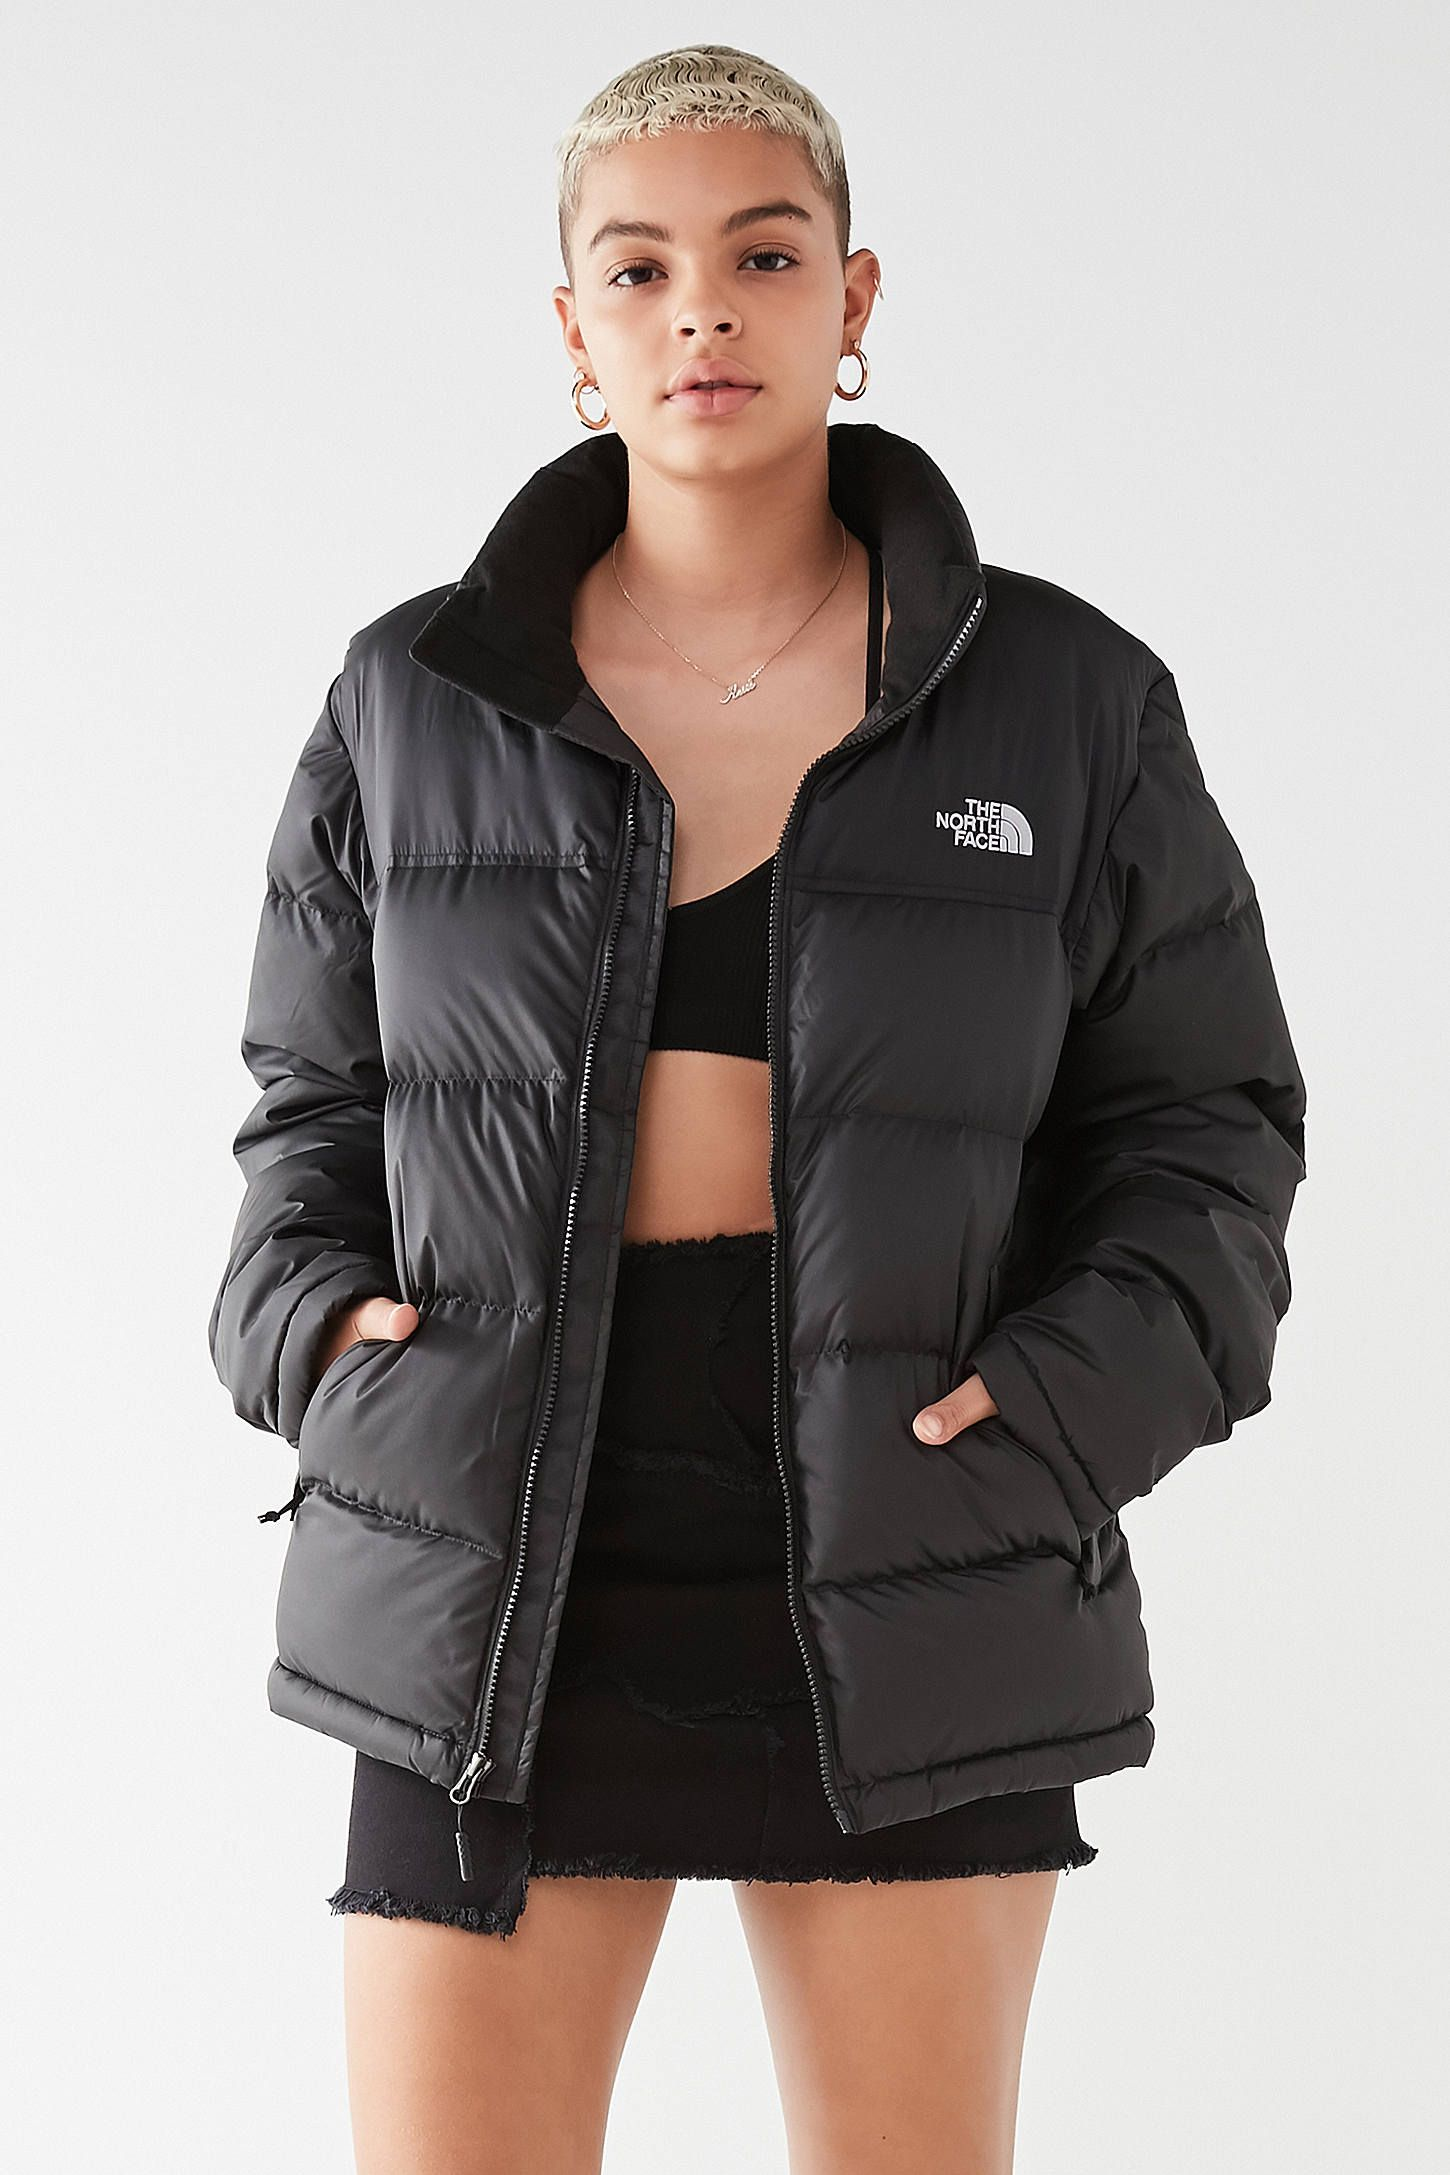 Shop The North Face Nuptse Puffer Jacket At Urban Outfitters Today We Carry All The Latest Styles Colors And Brands Jackets North Face Nuptse Puffer Jackets [ 2175 x 1450 Pixel ]